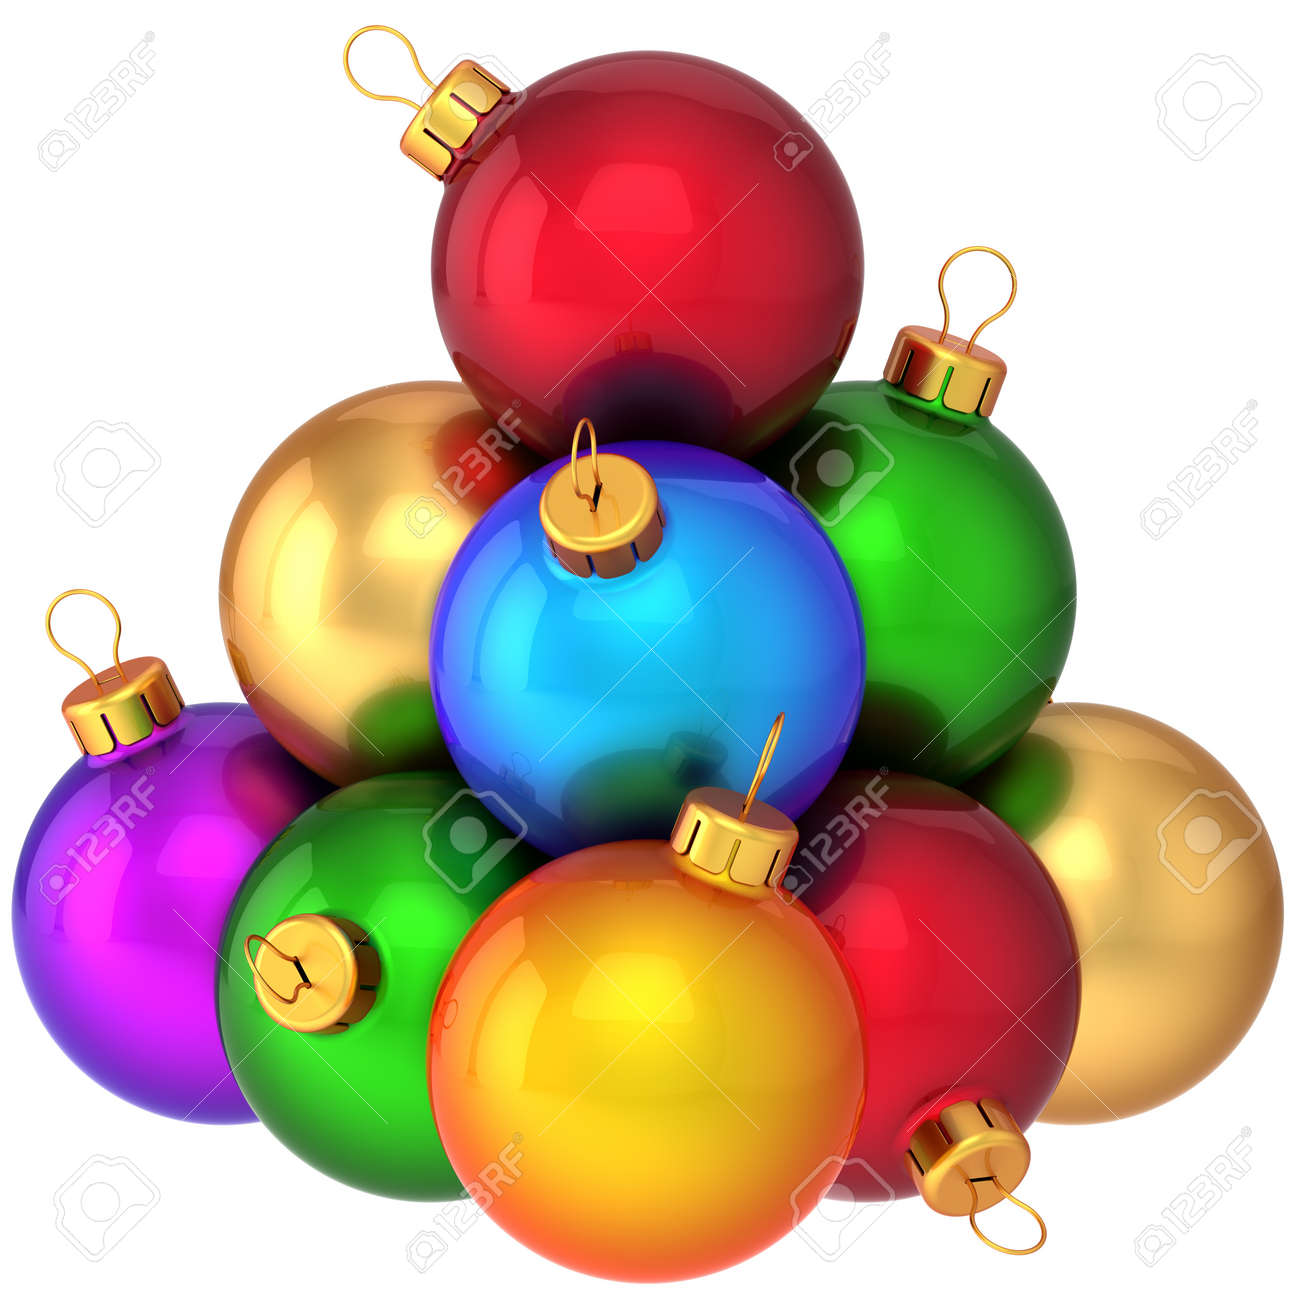 Pyramid christmas ornament - Stock Photo Super Christmas Balls Multicolored Arranged As A Pyramid Beautiful Modern Shiny New Year Decoration Baubles 3d Render